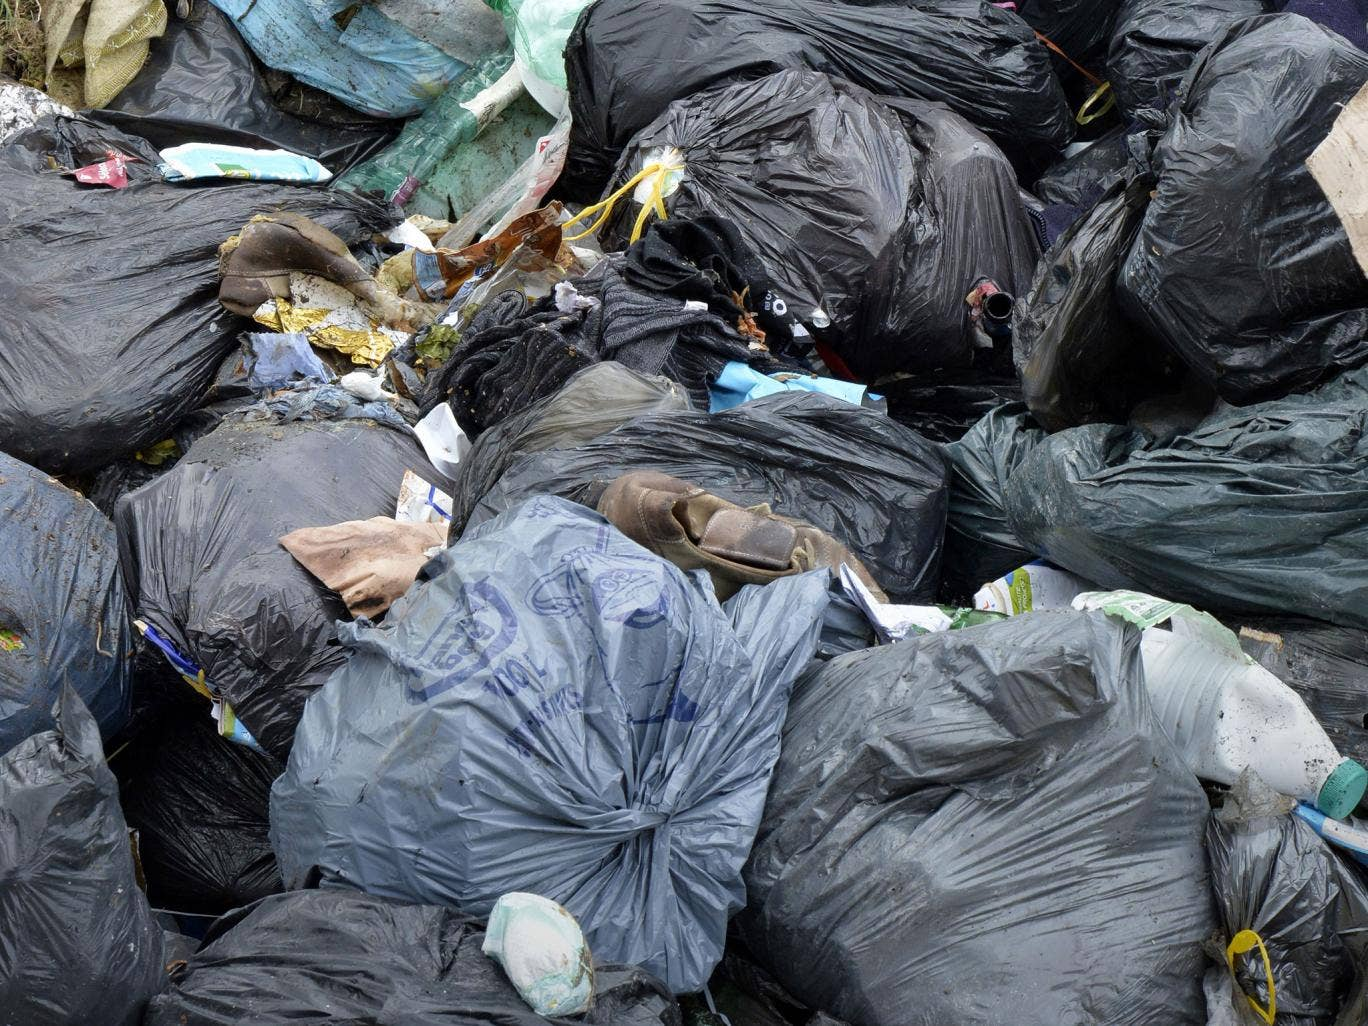 Garbage bags pile up at the Technical Landfill Centre (ETC) of Villemarche that handles the disposal of organic waste dumped at site in Tence on April 22, 2014.